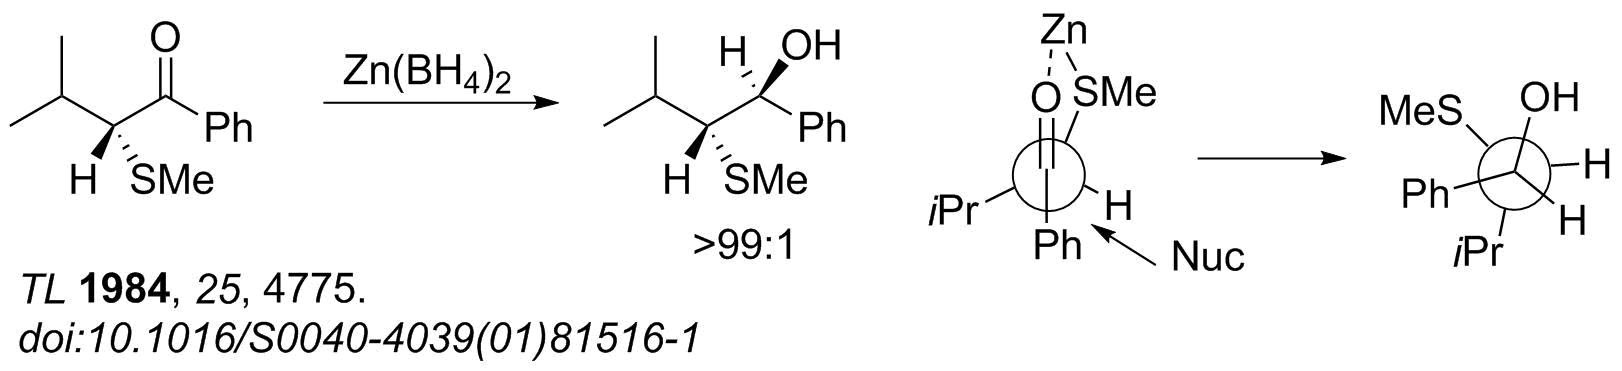 Carbonyl Addition 7